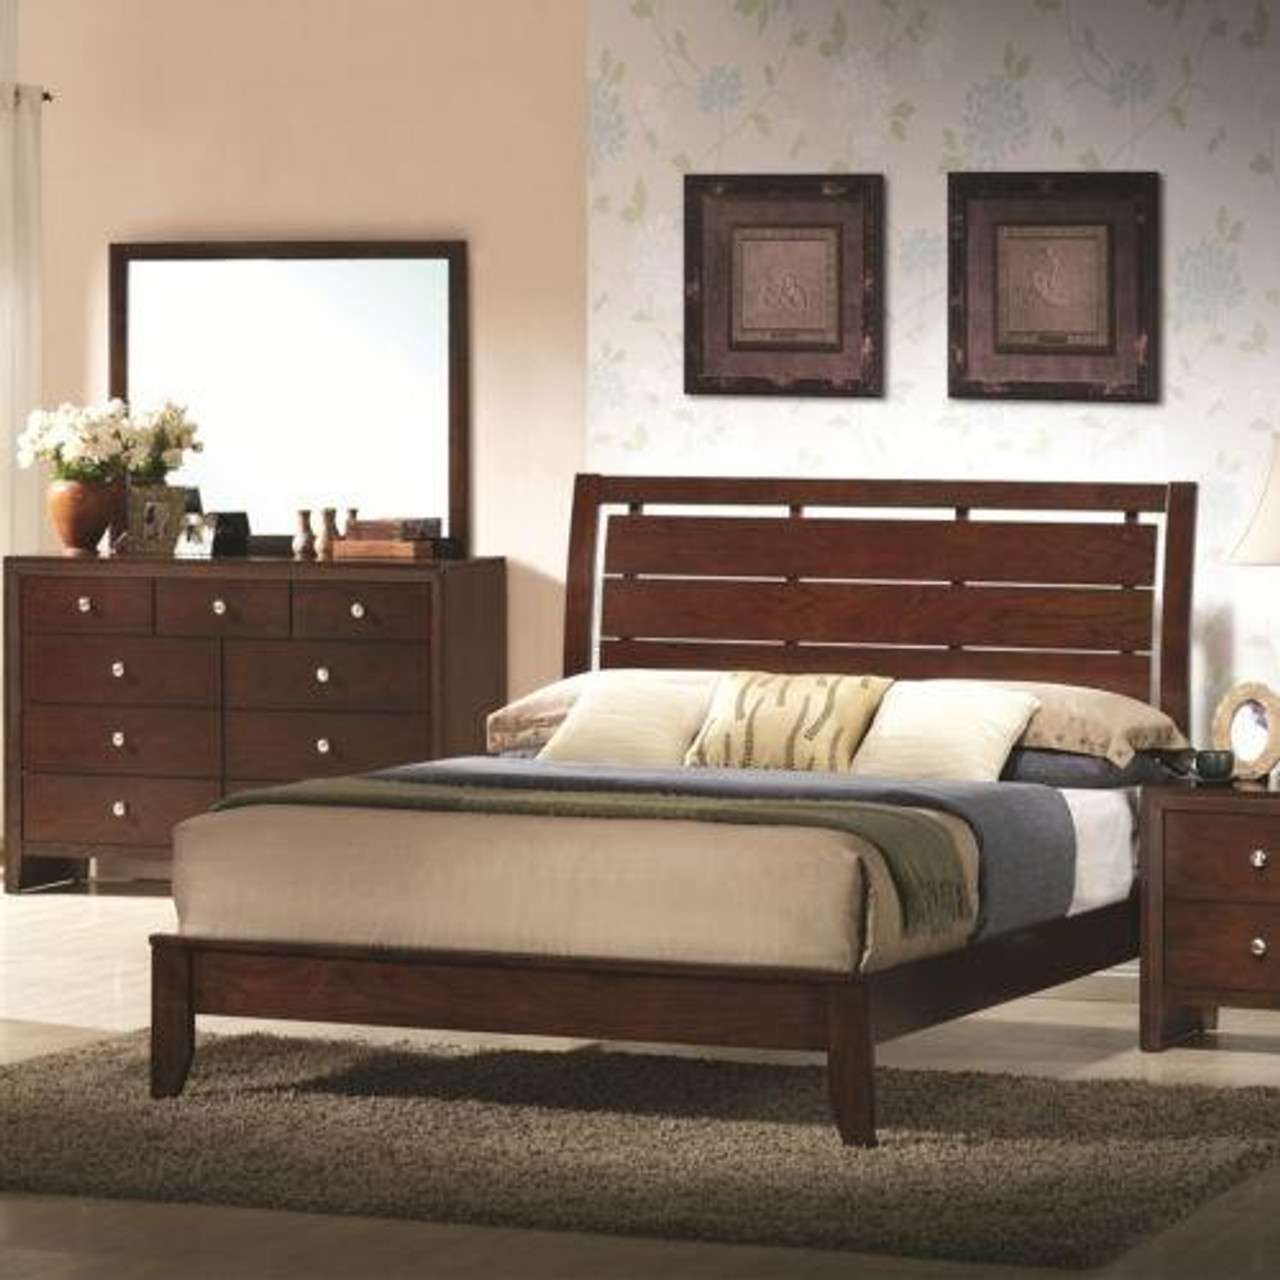 Home Furniture Bed Frame With Platform Wood Slats Tall Headboard Queen Size Hw58990